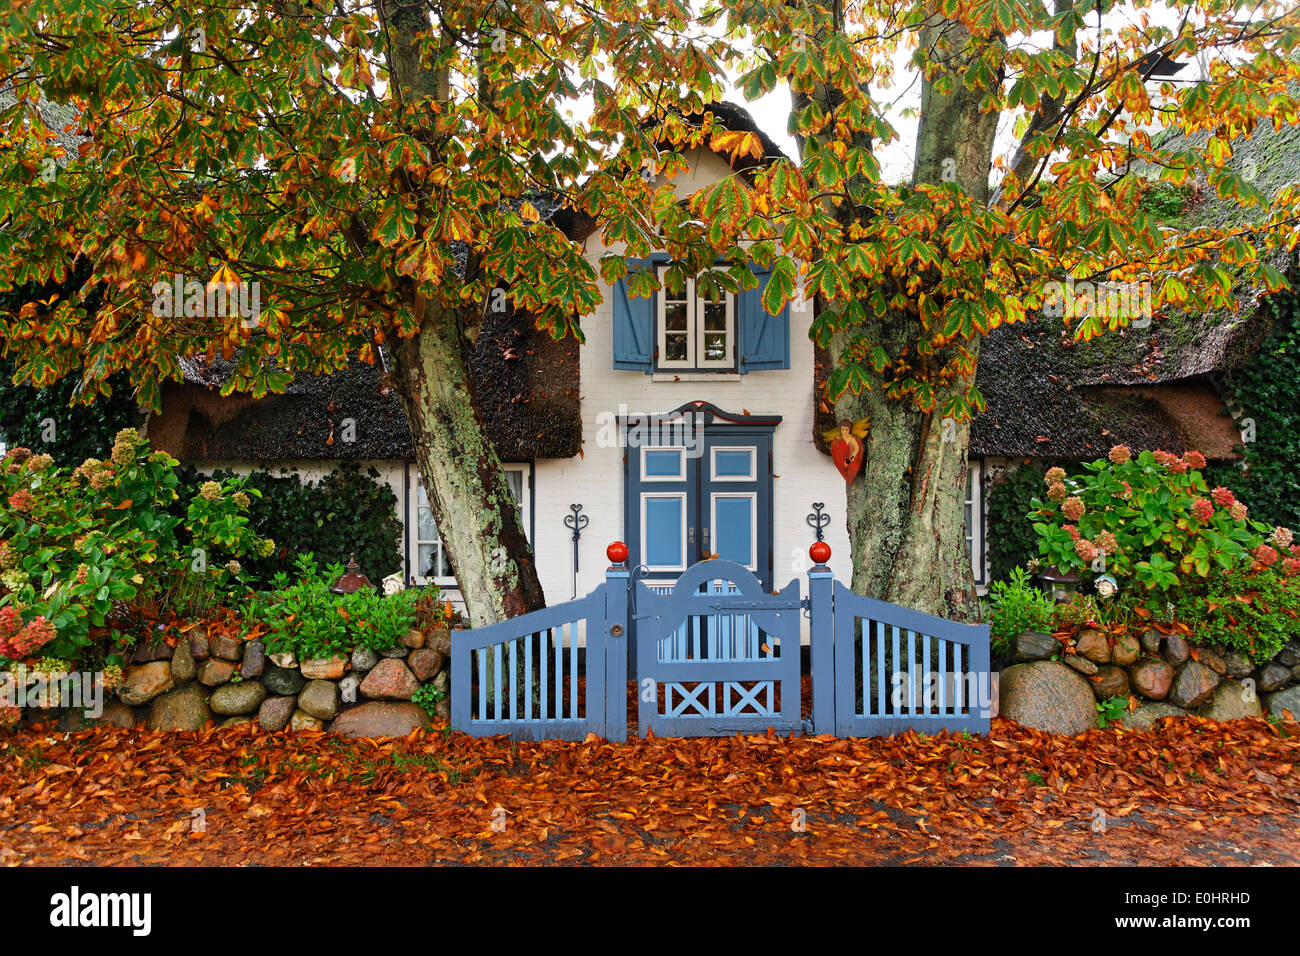 germany typical house gate fence deutschland schleswig holstein stock photo royalty free. Black Bedroom Furniture Sets. Home Design Ideas